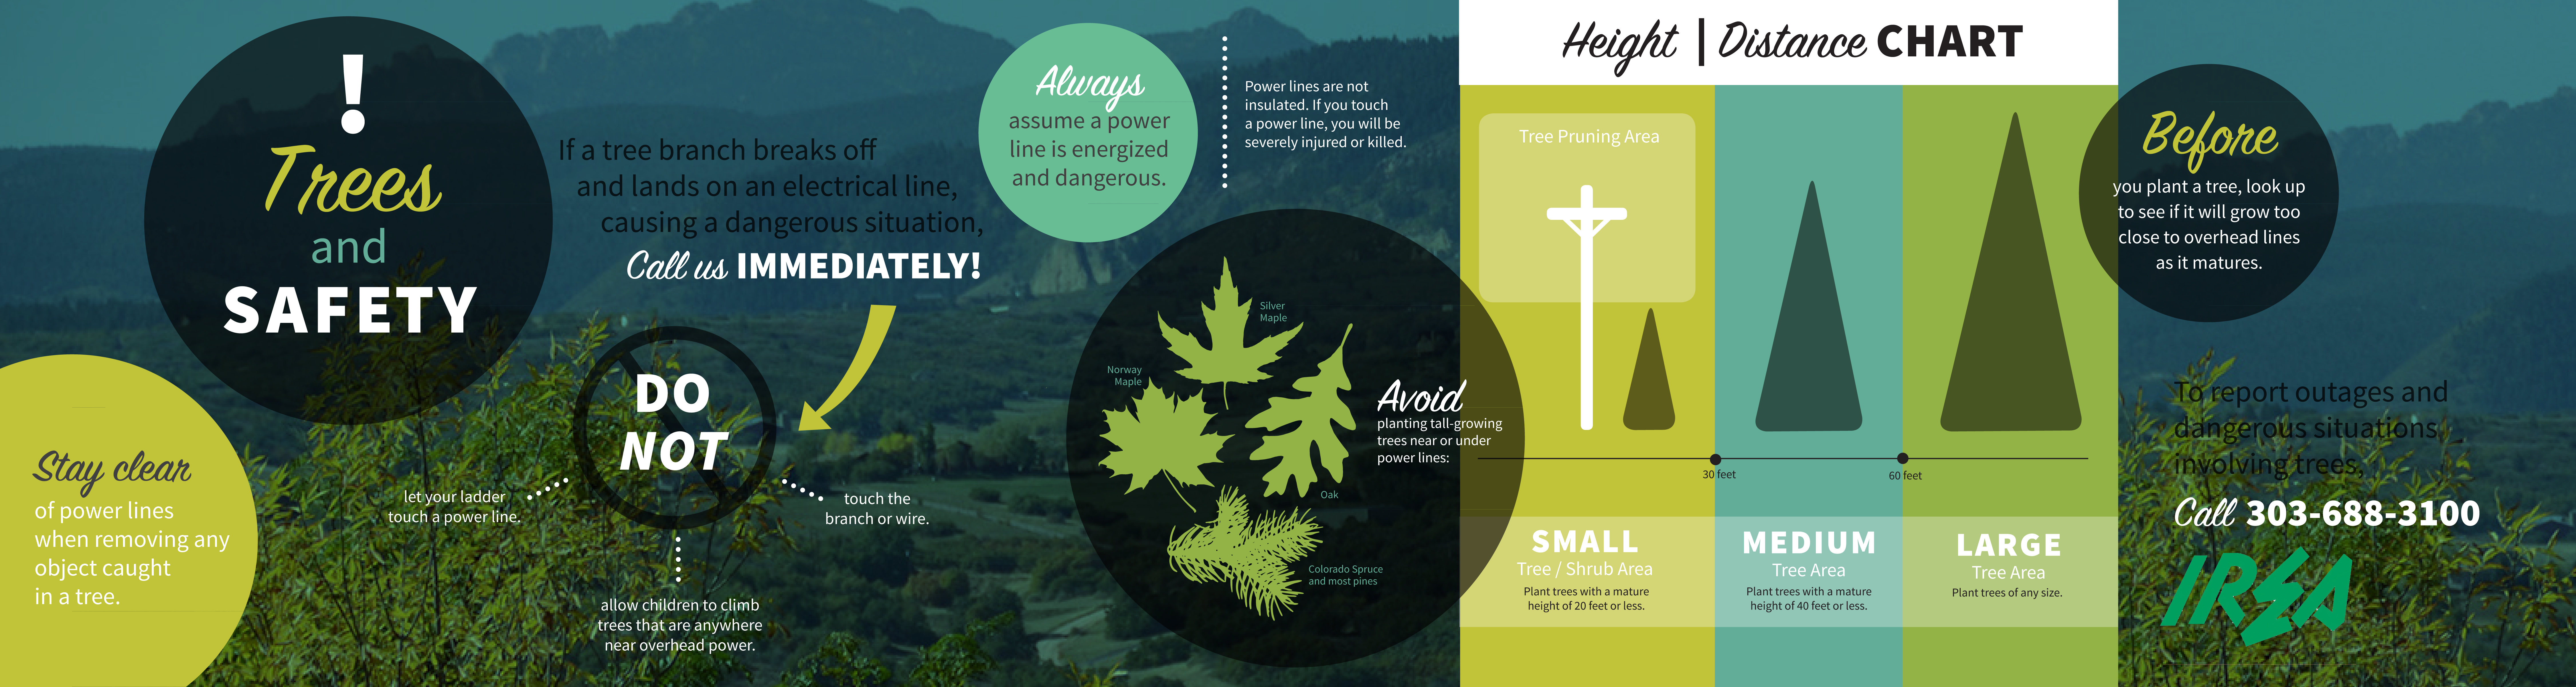 Trees & Safety: This is an Infographic for IREA--Intermountain Rural Electric Association.